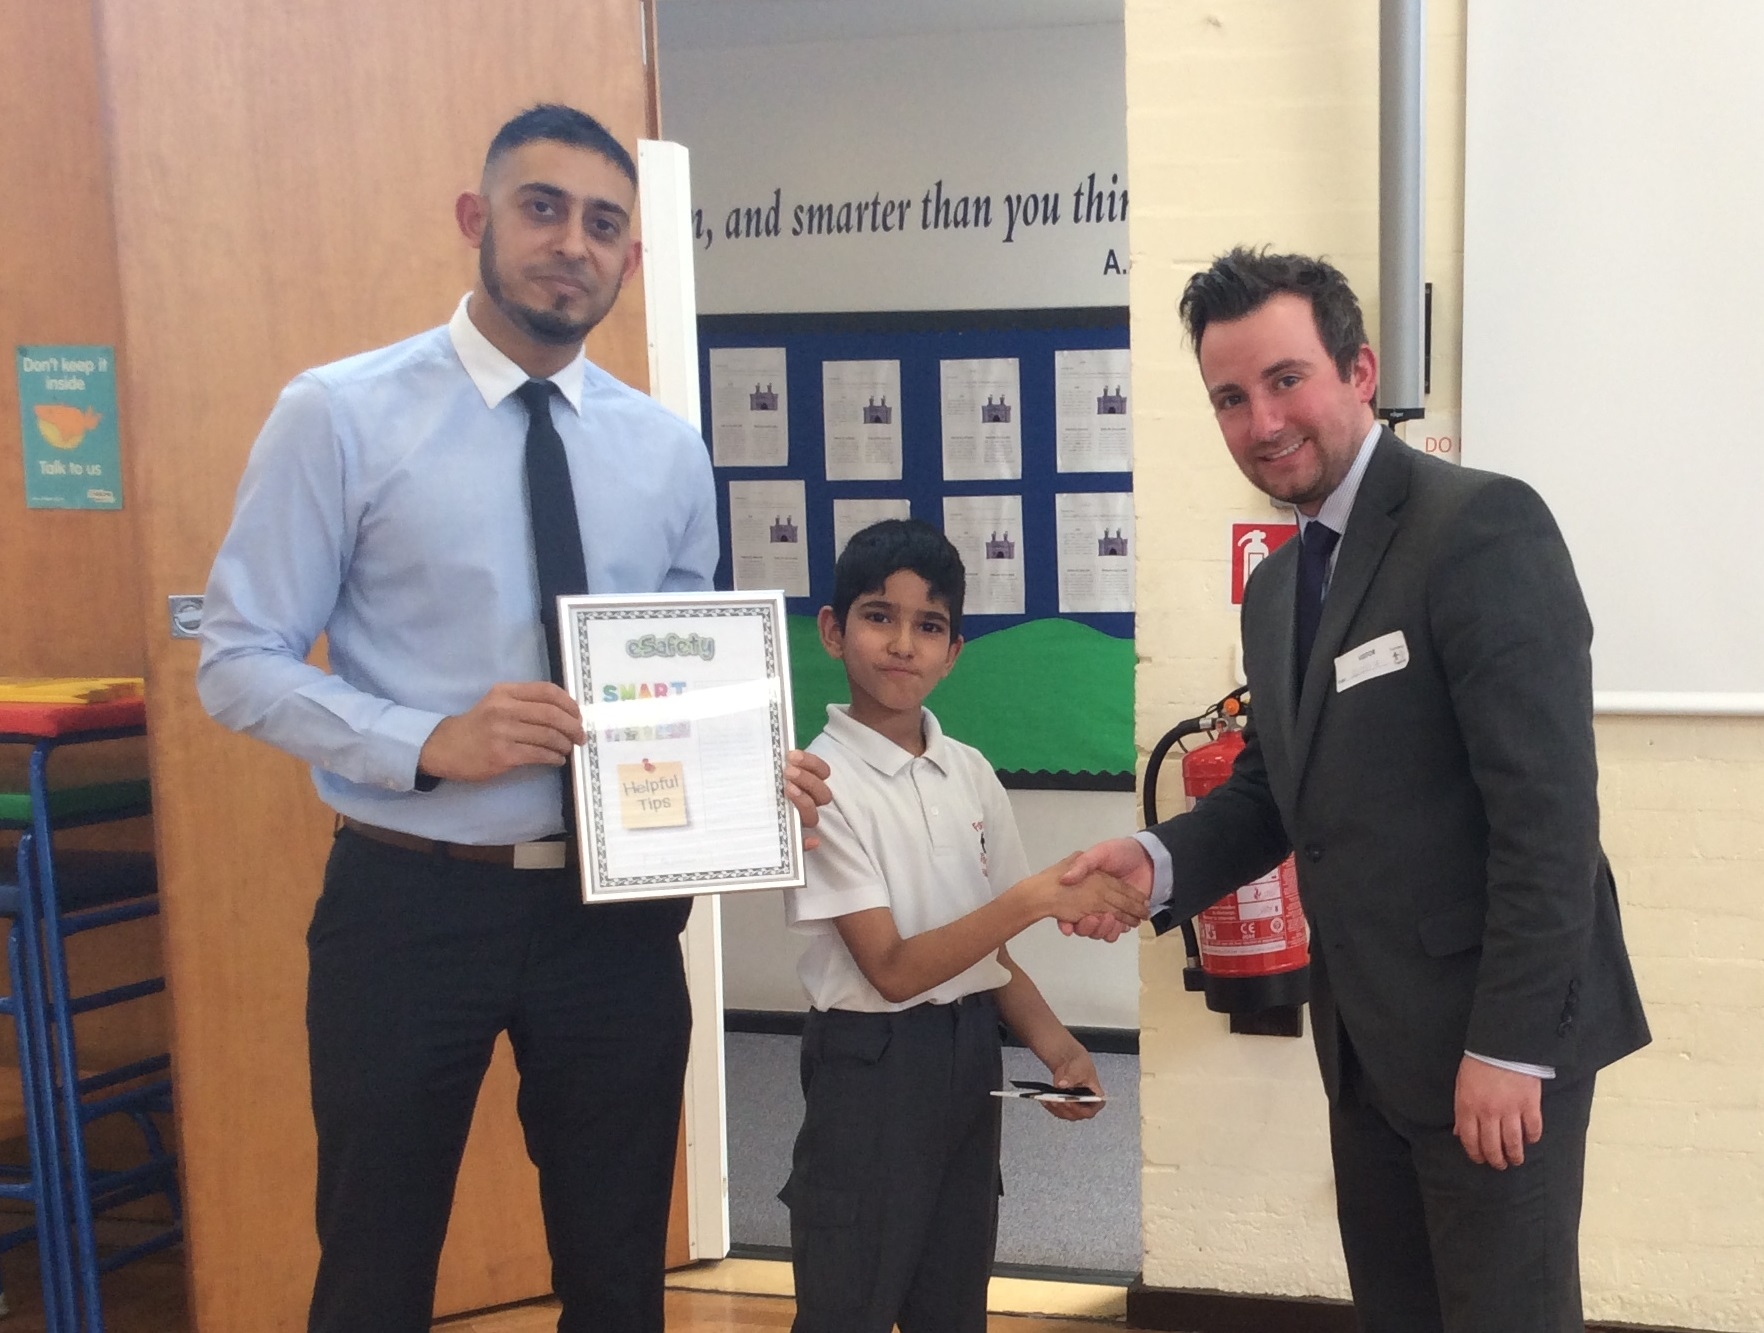 3rd place Jatinder from Hargate Primary School receiving prize form Alex Cox, PK Education and teacher, Mr Anwar